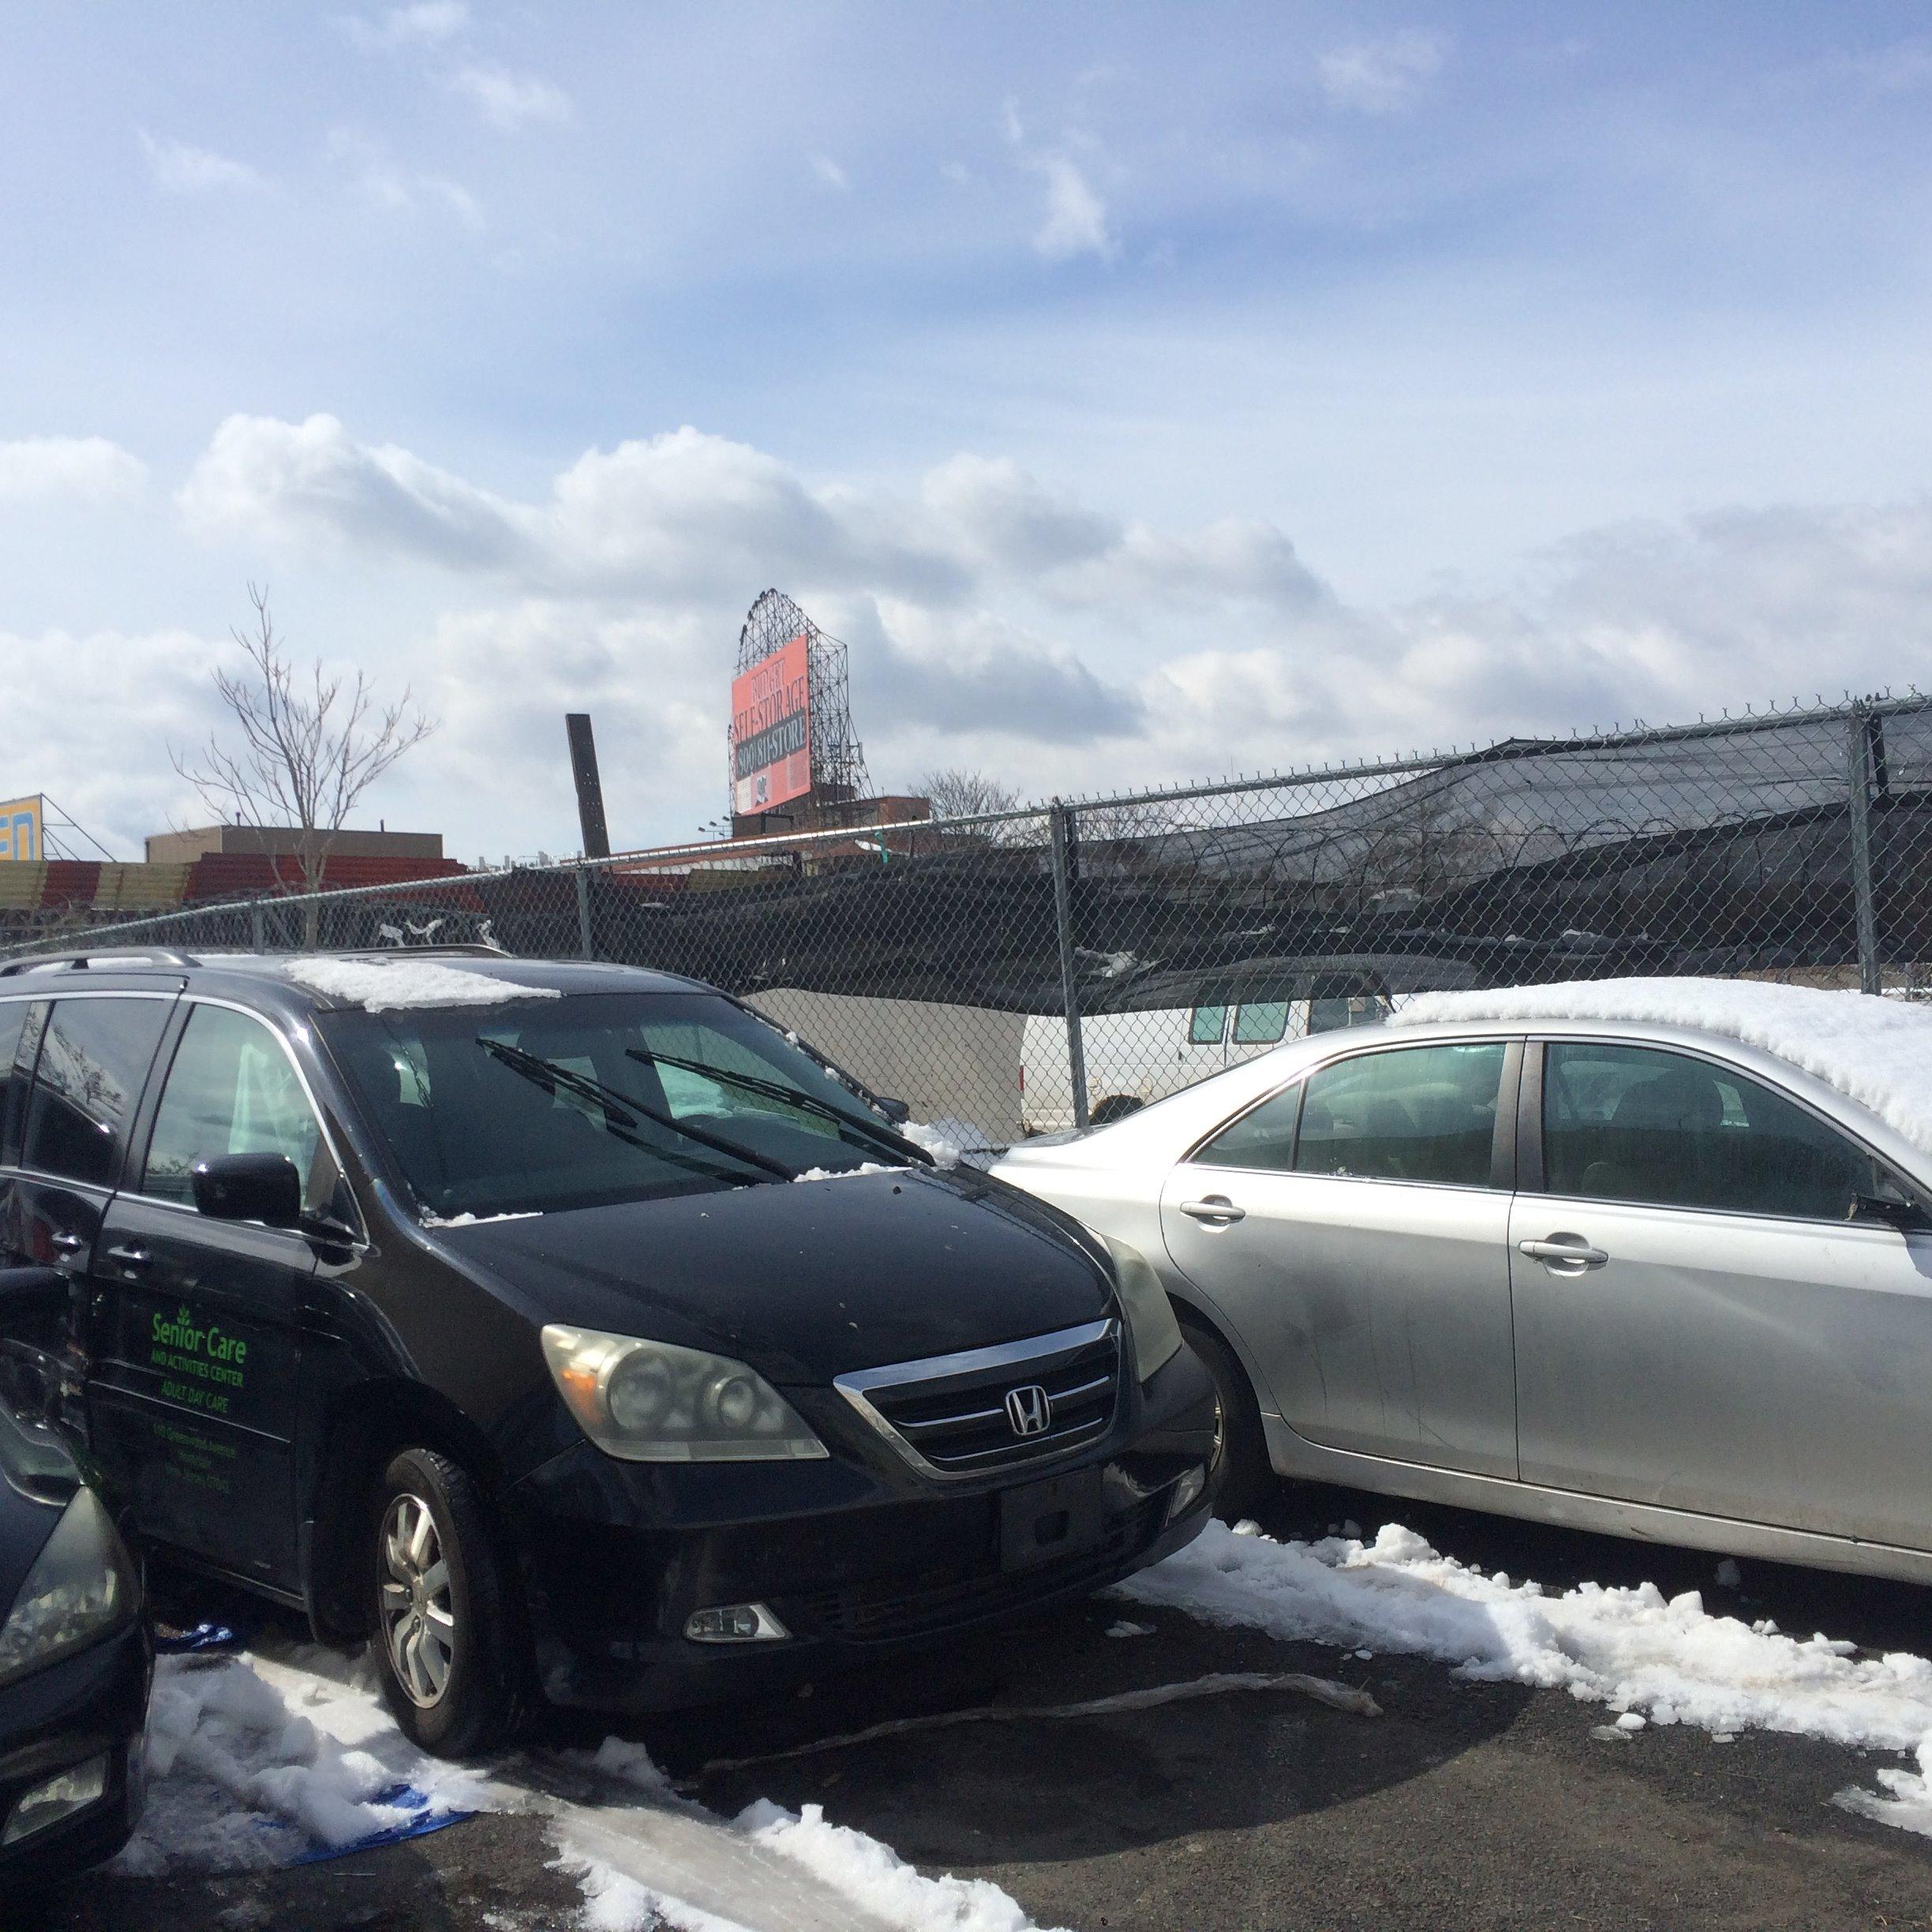 Car For Cash Auto Buyer - Junk Cars 4 Cash in Newark, NJ